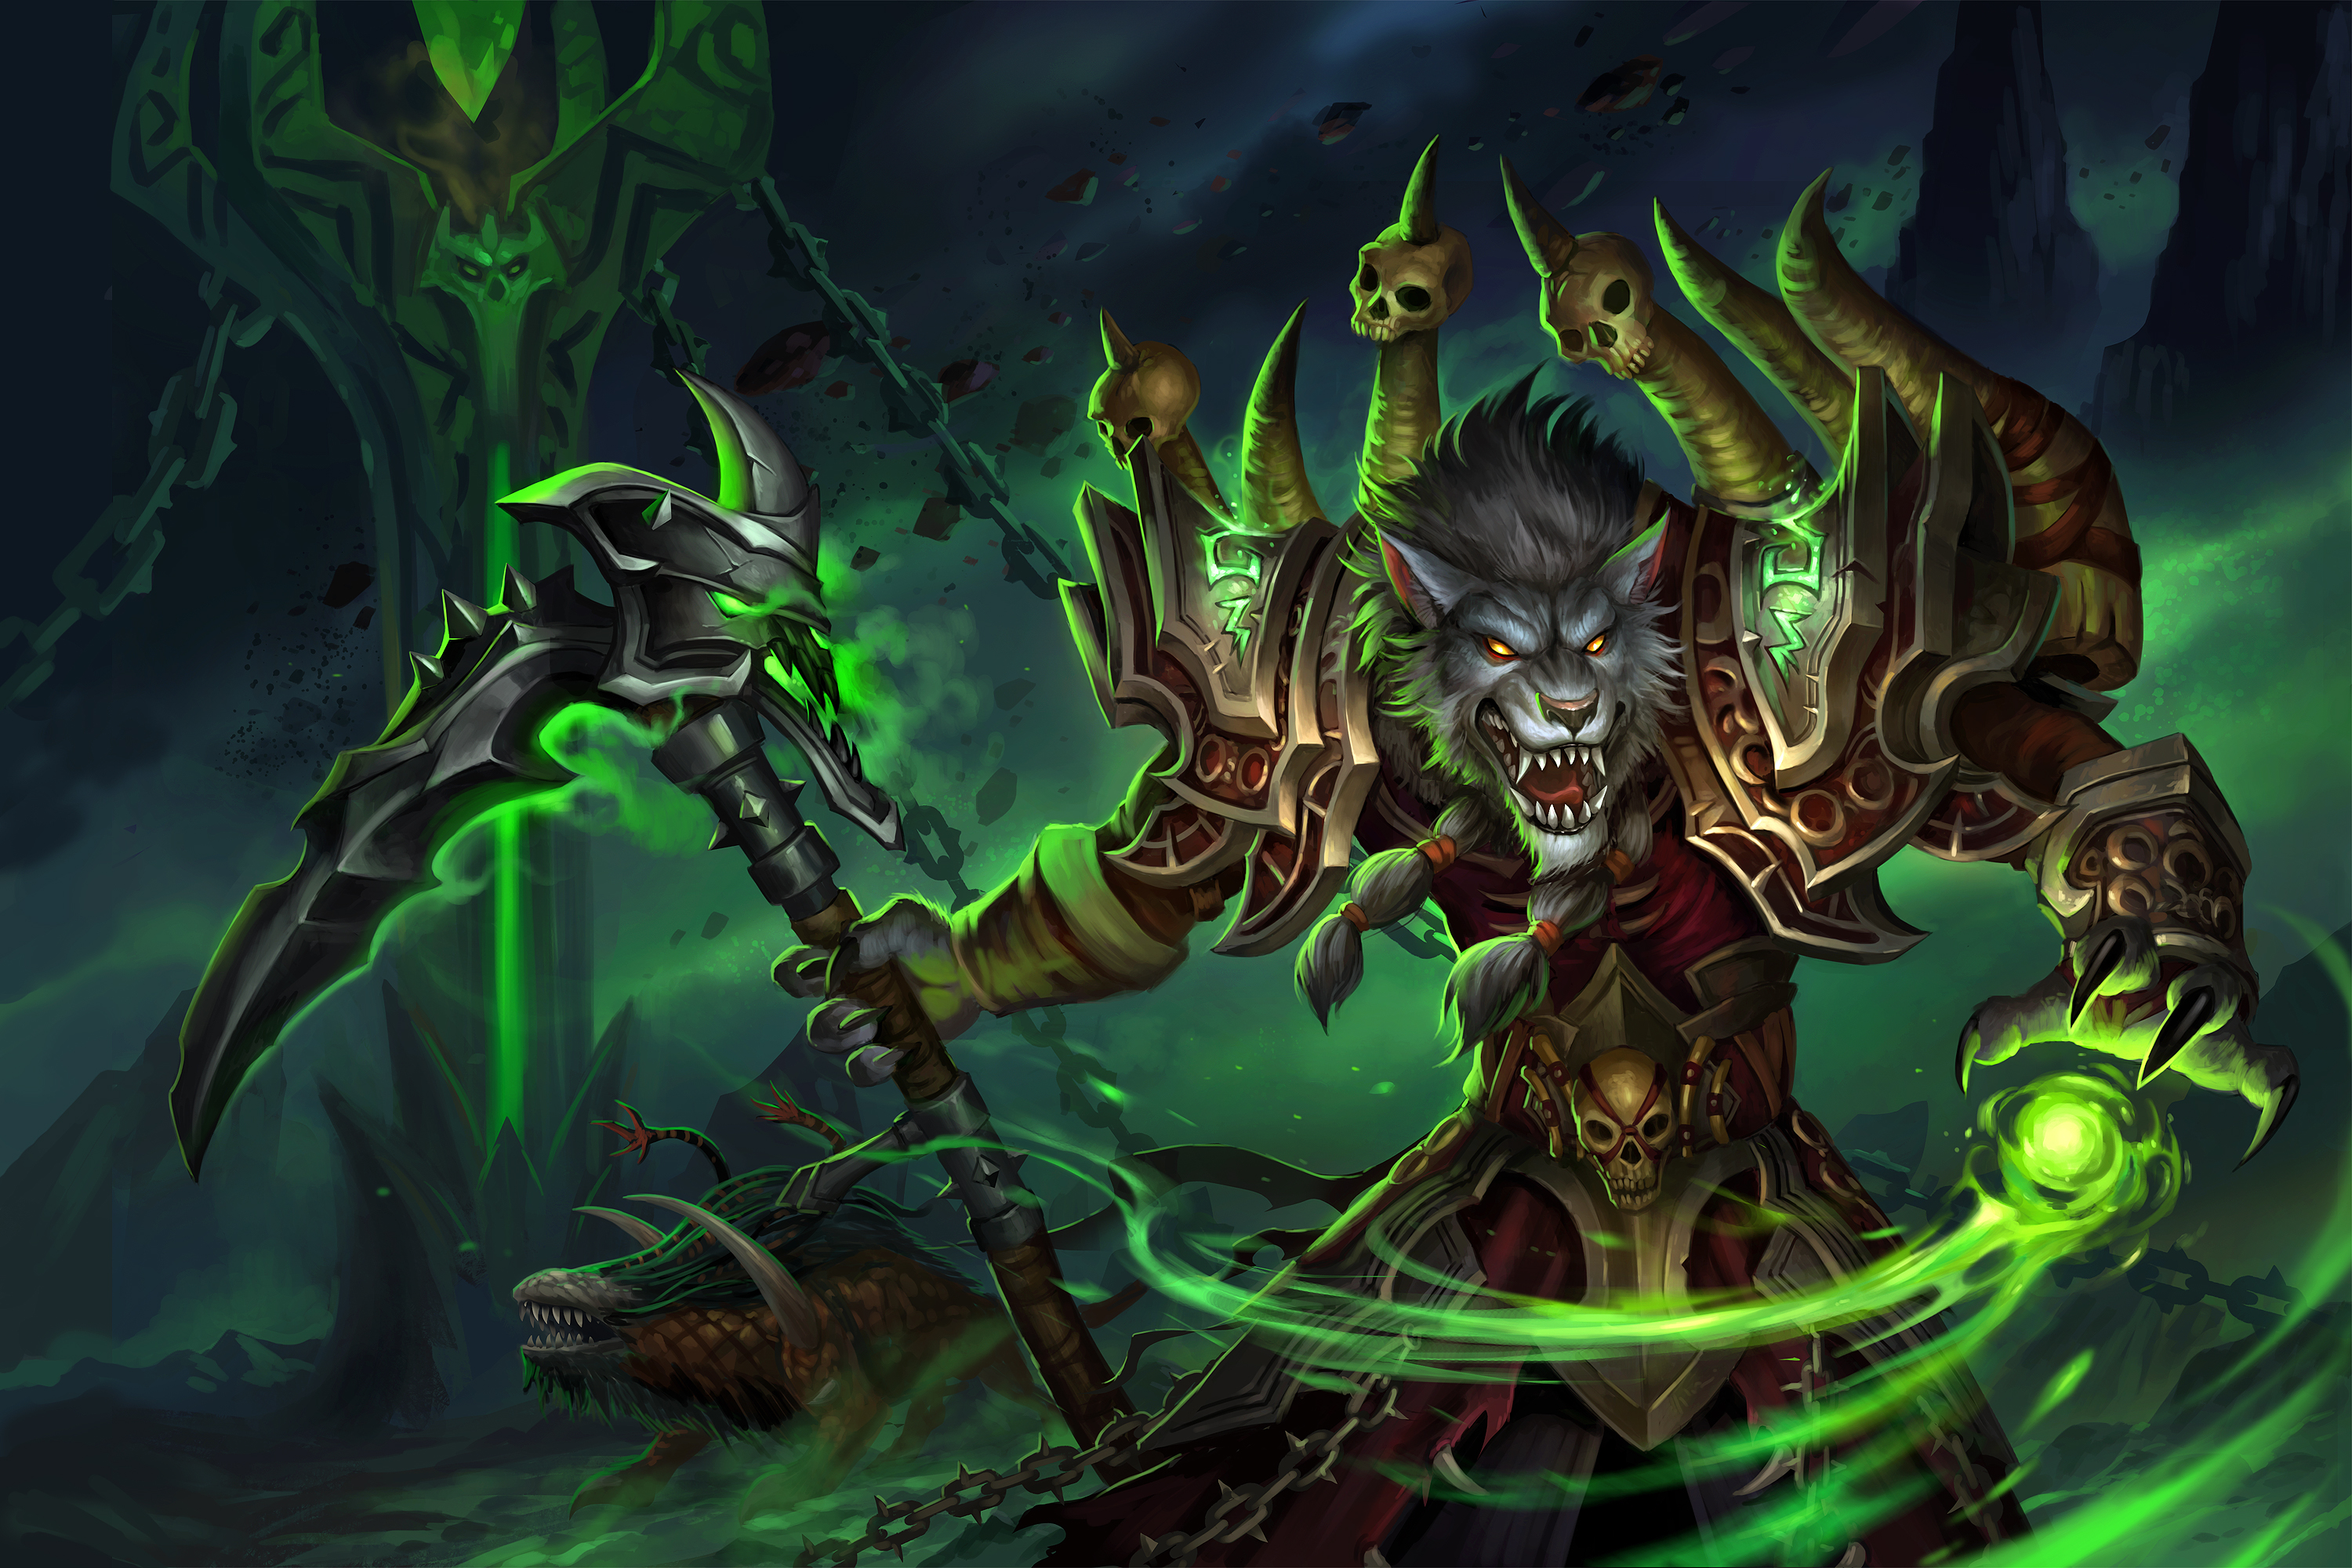 Pictures of World Of Warcraft Warlock Art - #rock-cafe